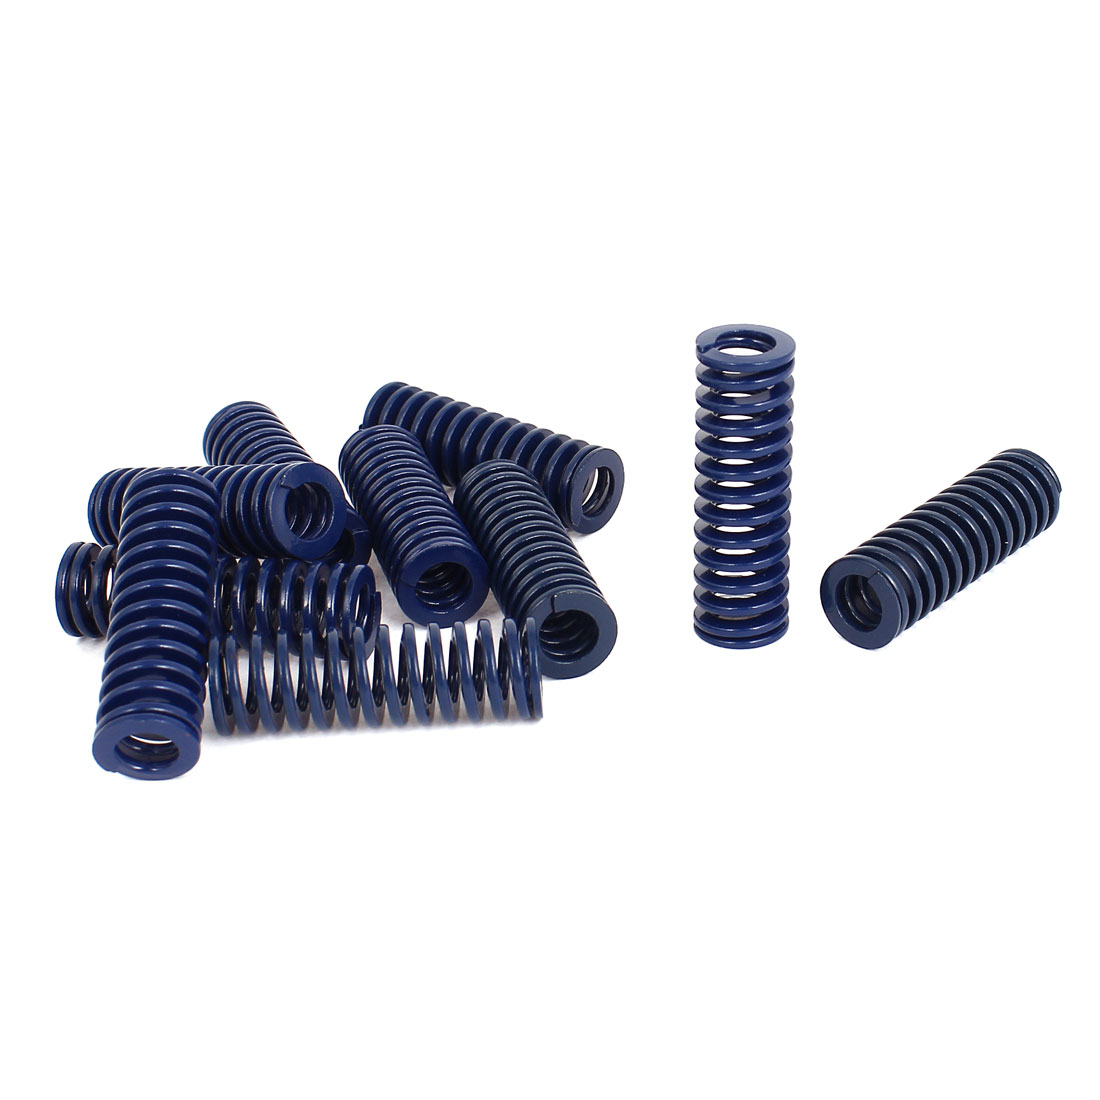 16mm OD 50mm Long Light Load Stamping Compression Mold Die Spring Blue 10pcs